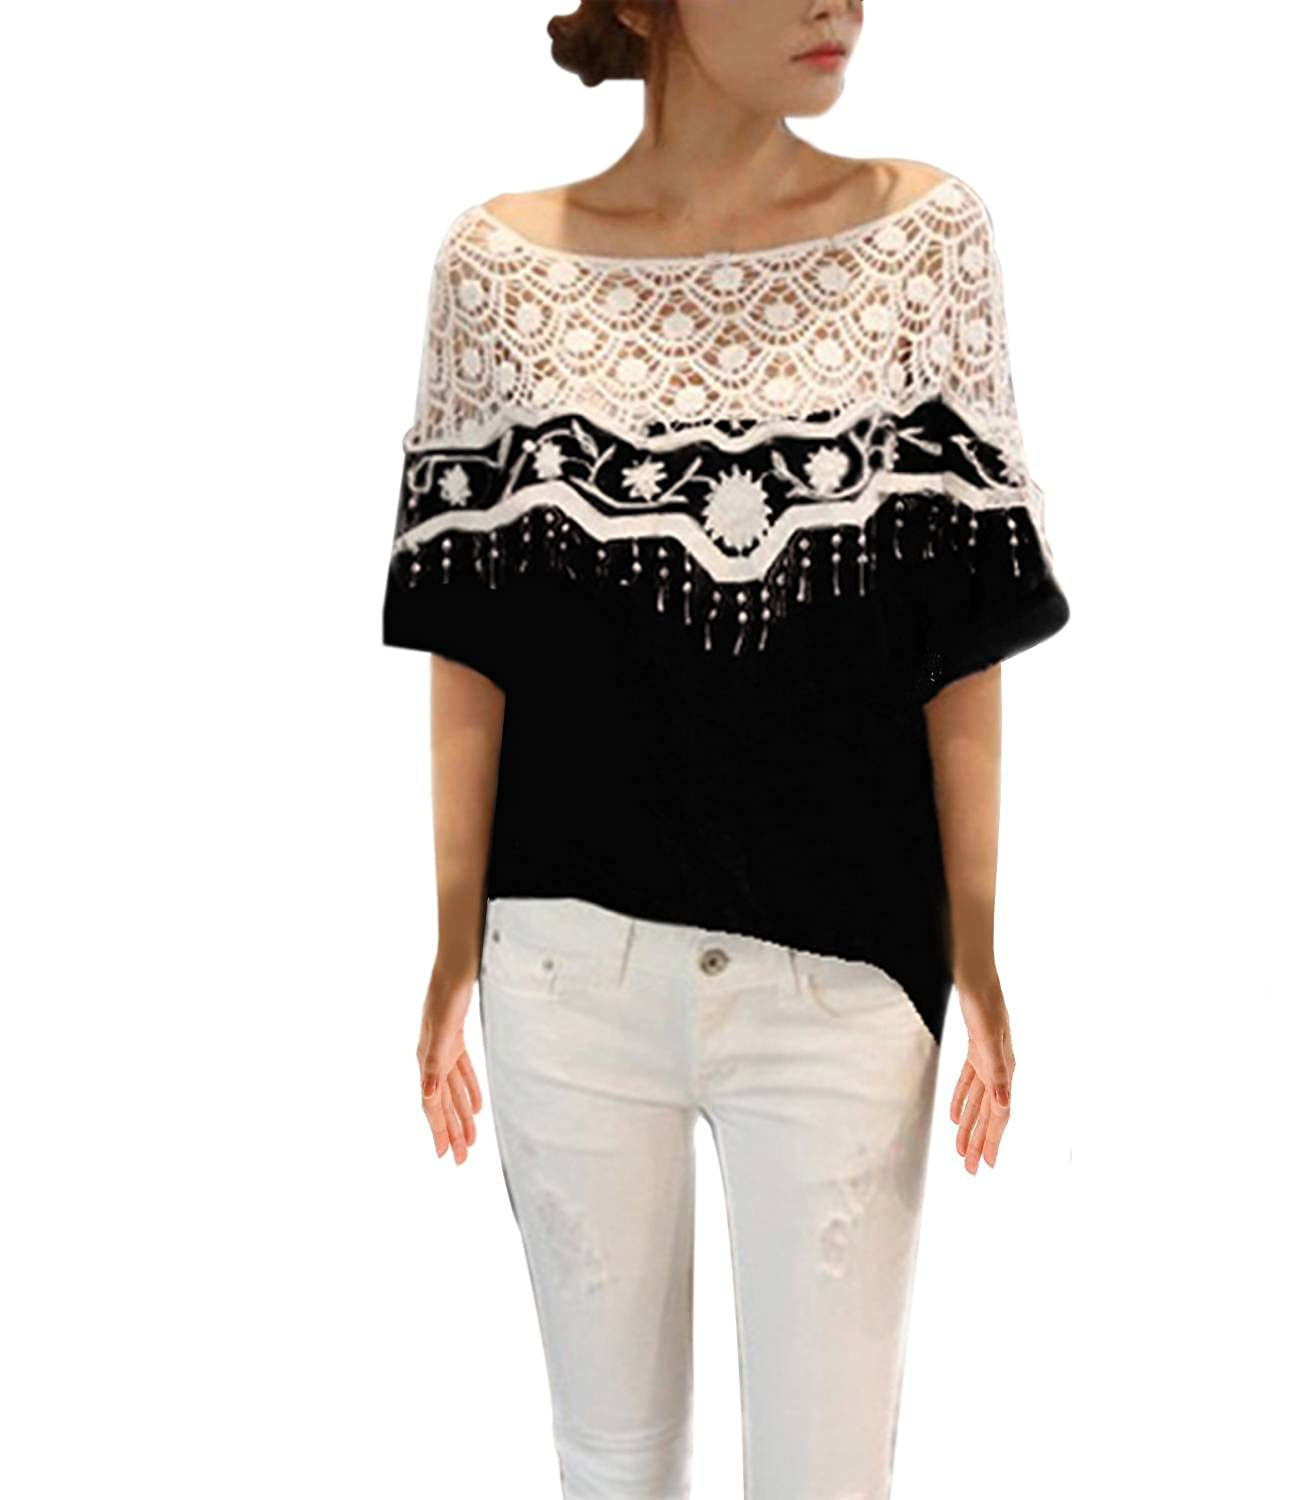 bdcb27dd7856a Sexy Womens Hollow Crochet Lace Floral Poncho Shoulder Blouse Short Batwing  Sleeve T Shirt Top Black 3XL  Amazon.co.uk  Clothing